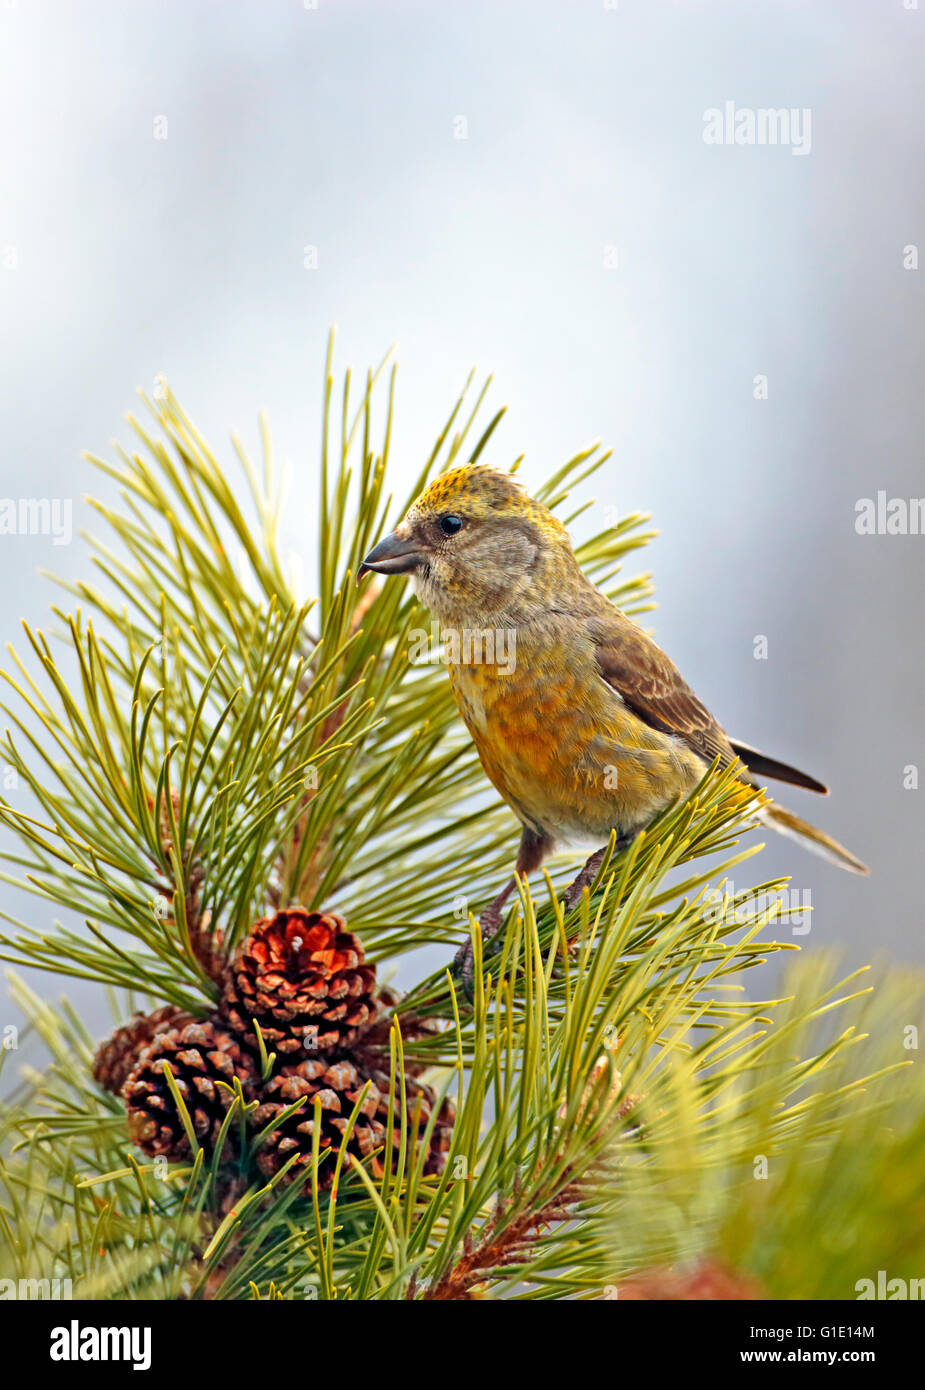 Female Cross-bill perched in pine tree looking to collect seeds from the pine cones. - Stock Image